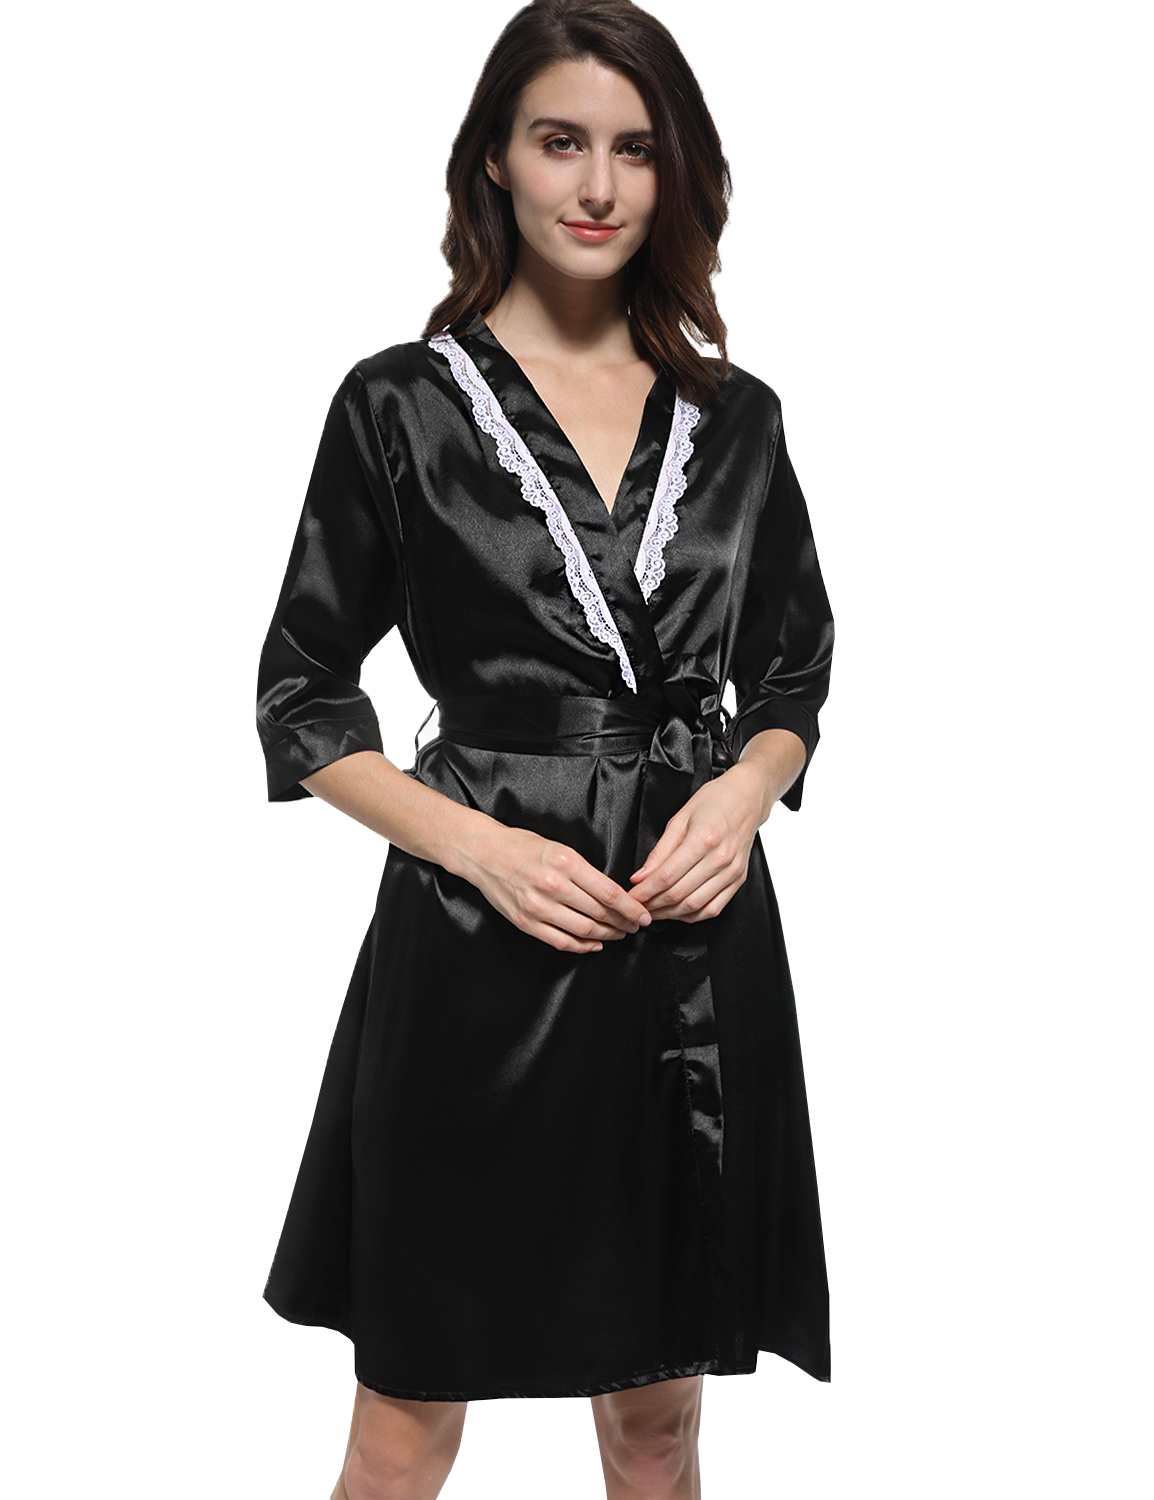 Women Robe Gown Lace Sexy Bathrobe Nightdress Pyjamas Casual Dress Bathing Robes Sleepwear Satin Silk Half Sleeve Homewear 2017